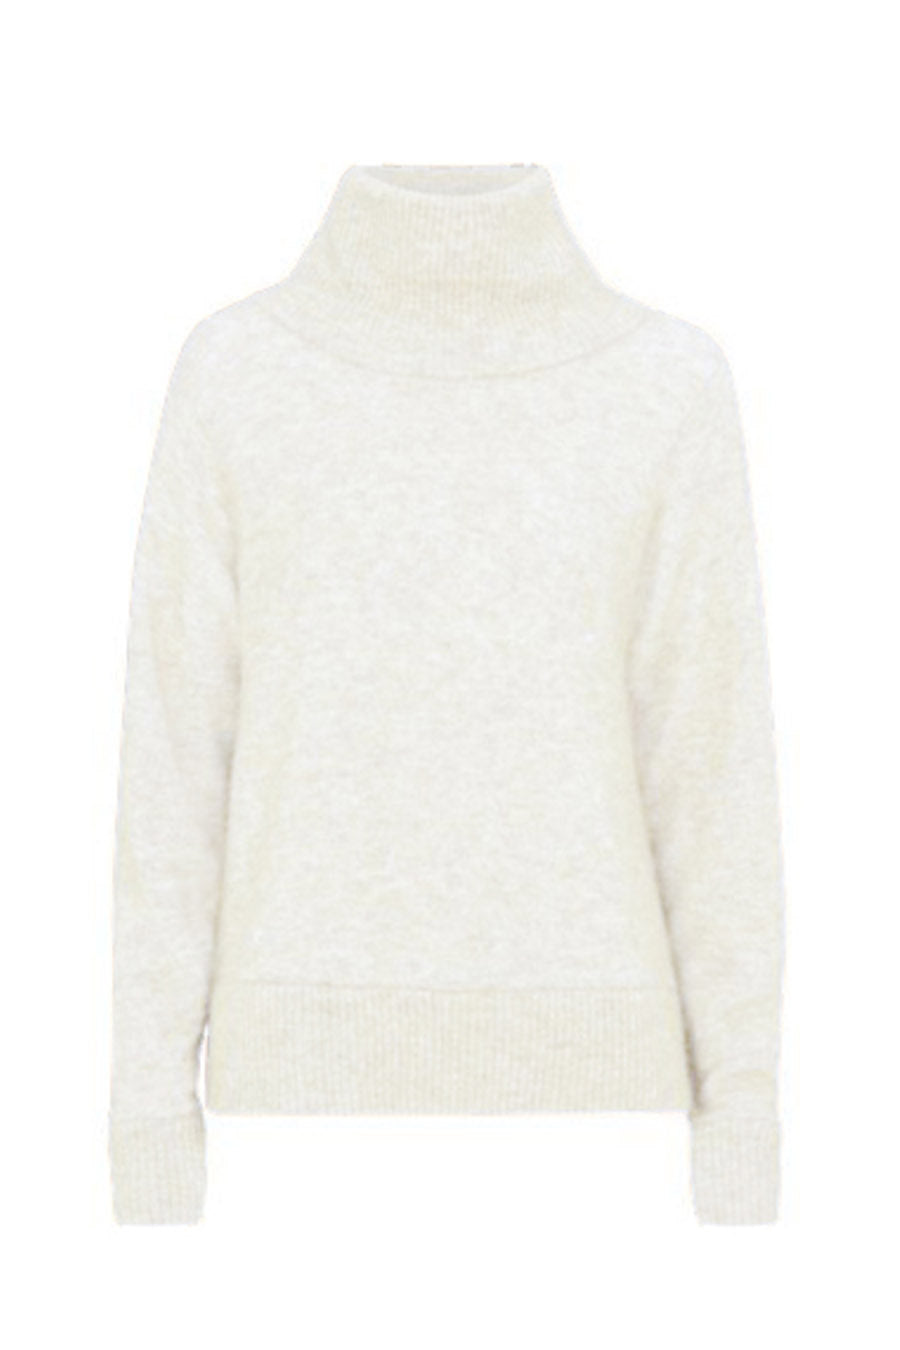 ELBE SWEATER - WHITE